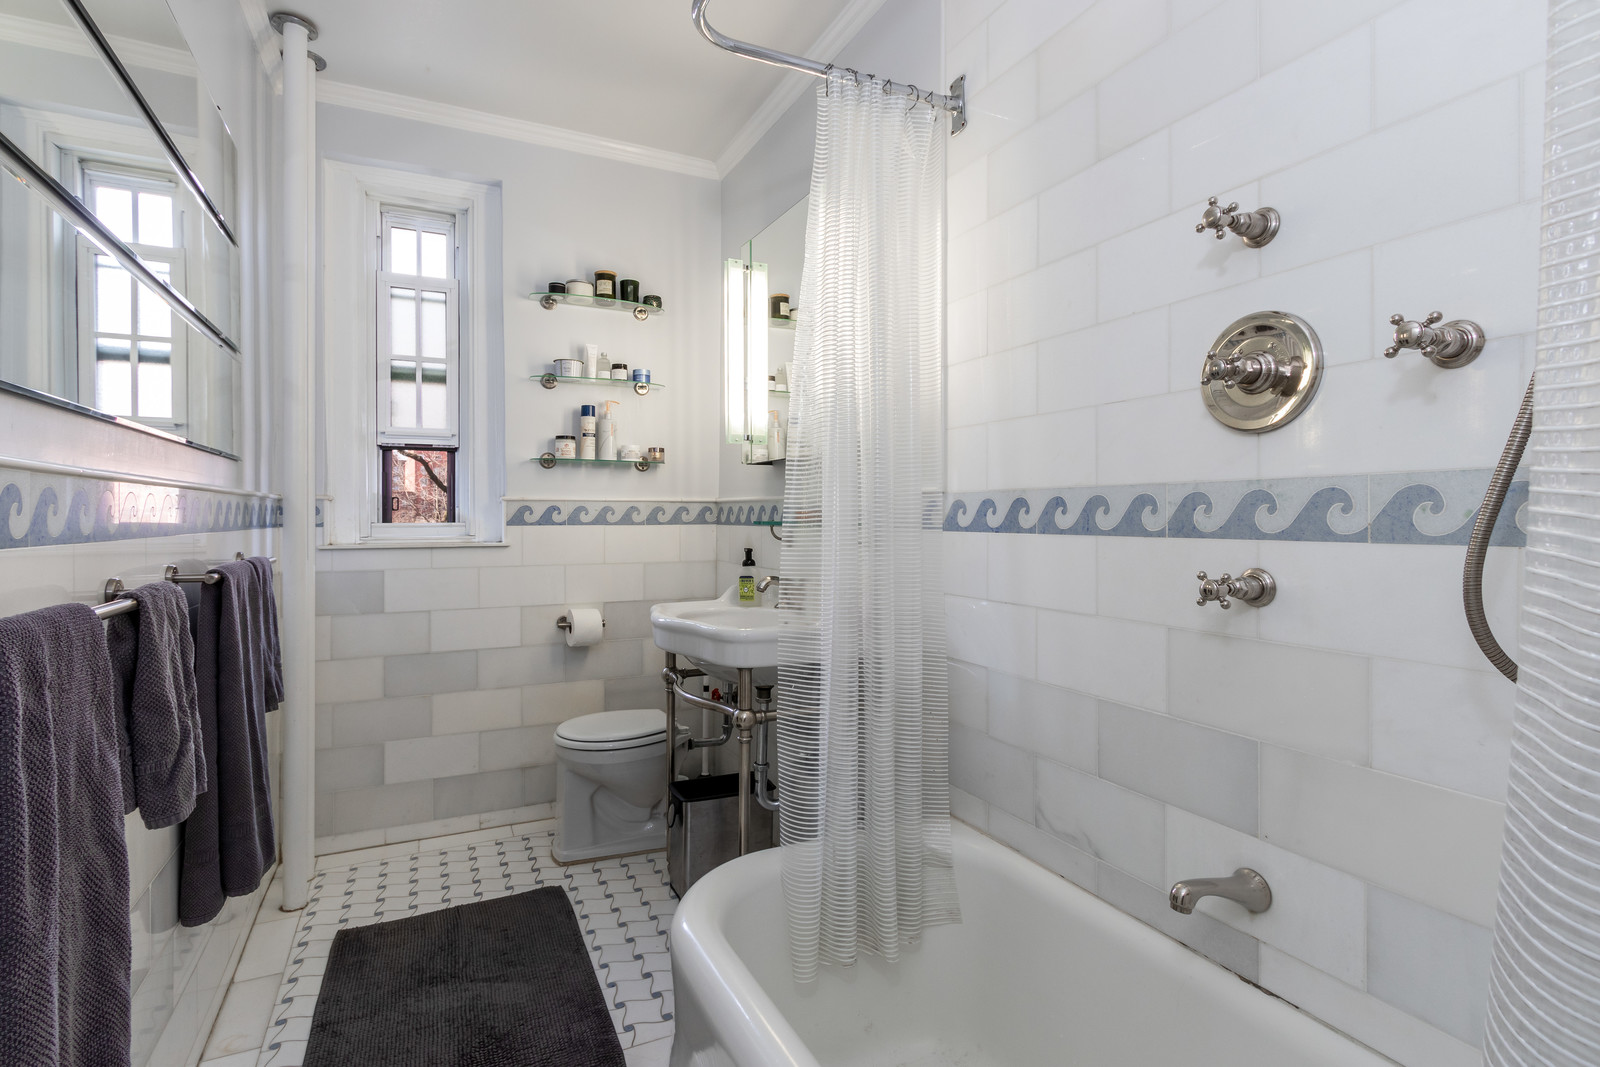 525 West 238th Street, New York, Bronx, New York, United States 10463, 2 Bedrooms Bedrooms, ,1 BathroomBathrooms,Co-op,FOR SALE,Fieldston Garden Apartments,West 238th Street,1119